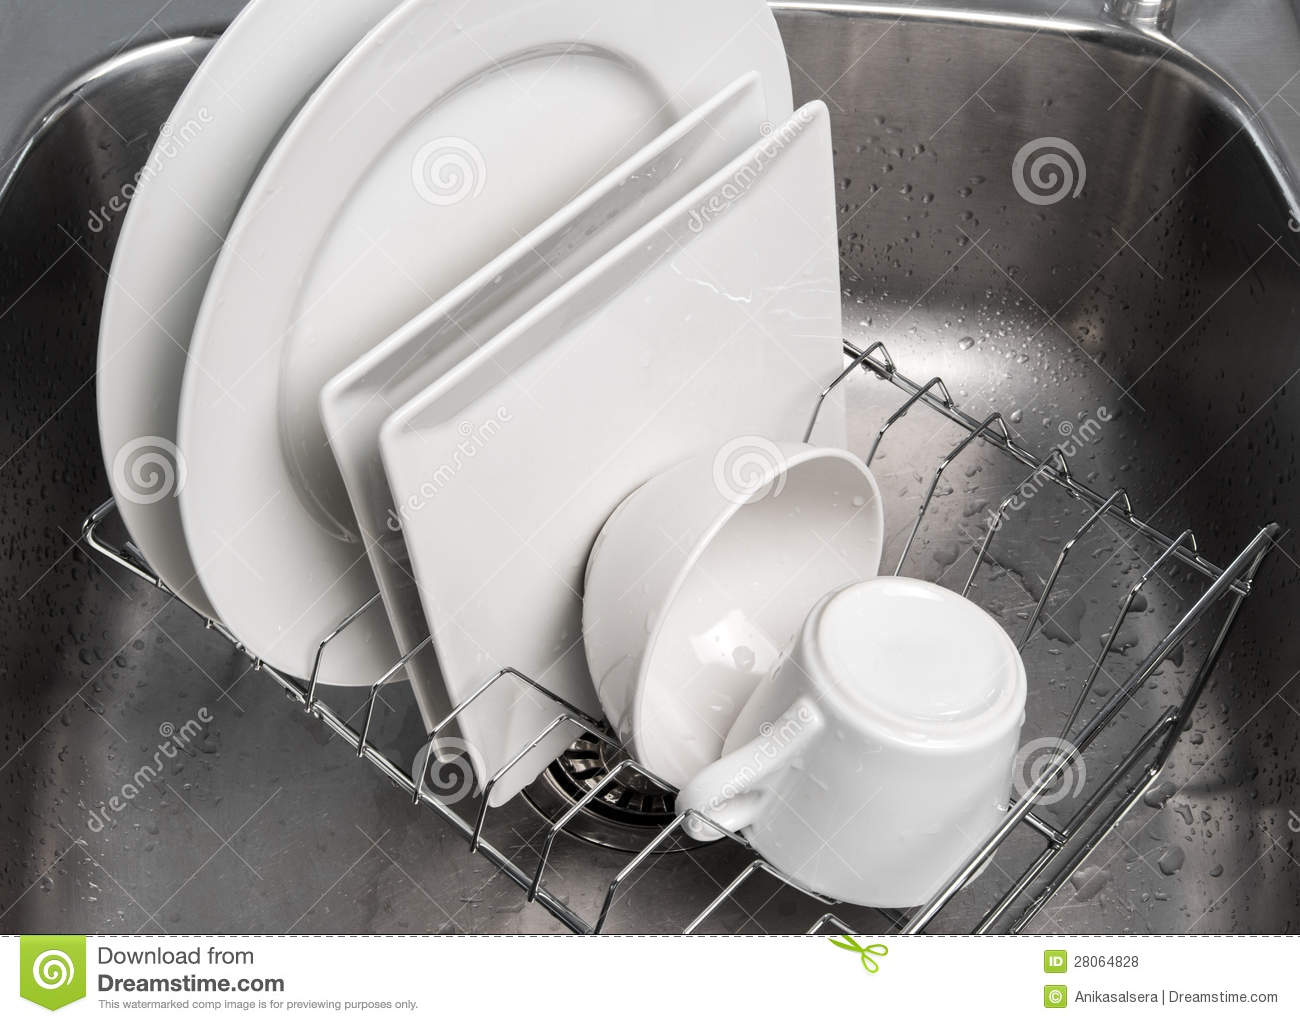 Kitchen Sink With Clean Dishes clean dishes on kitchen sink royalty free stock images - image